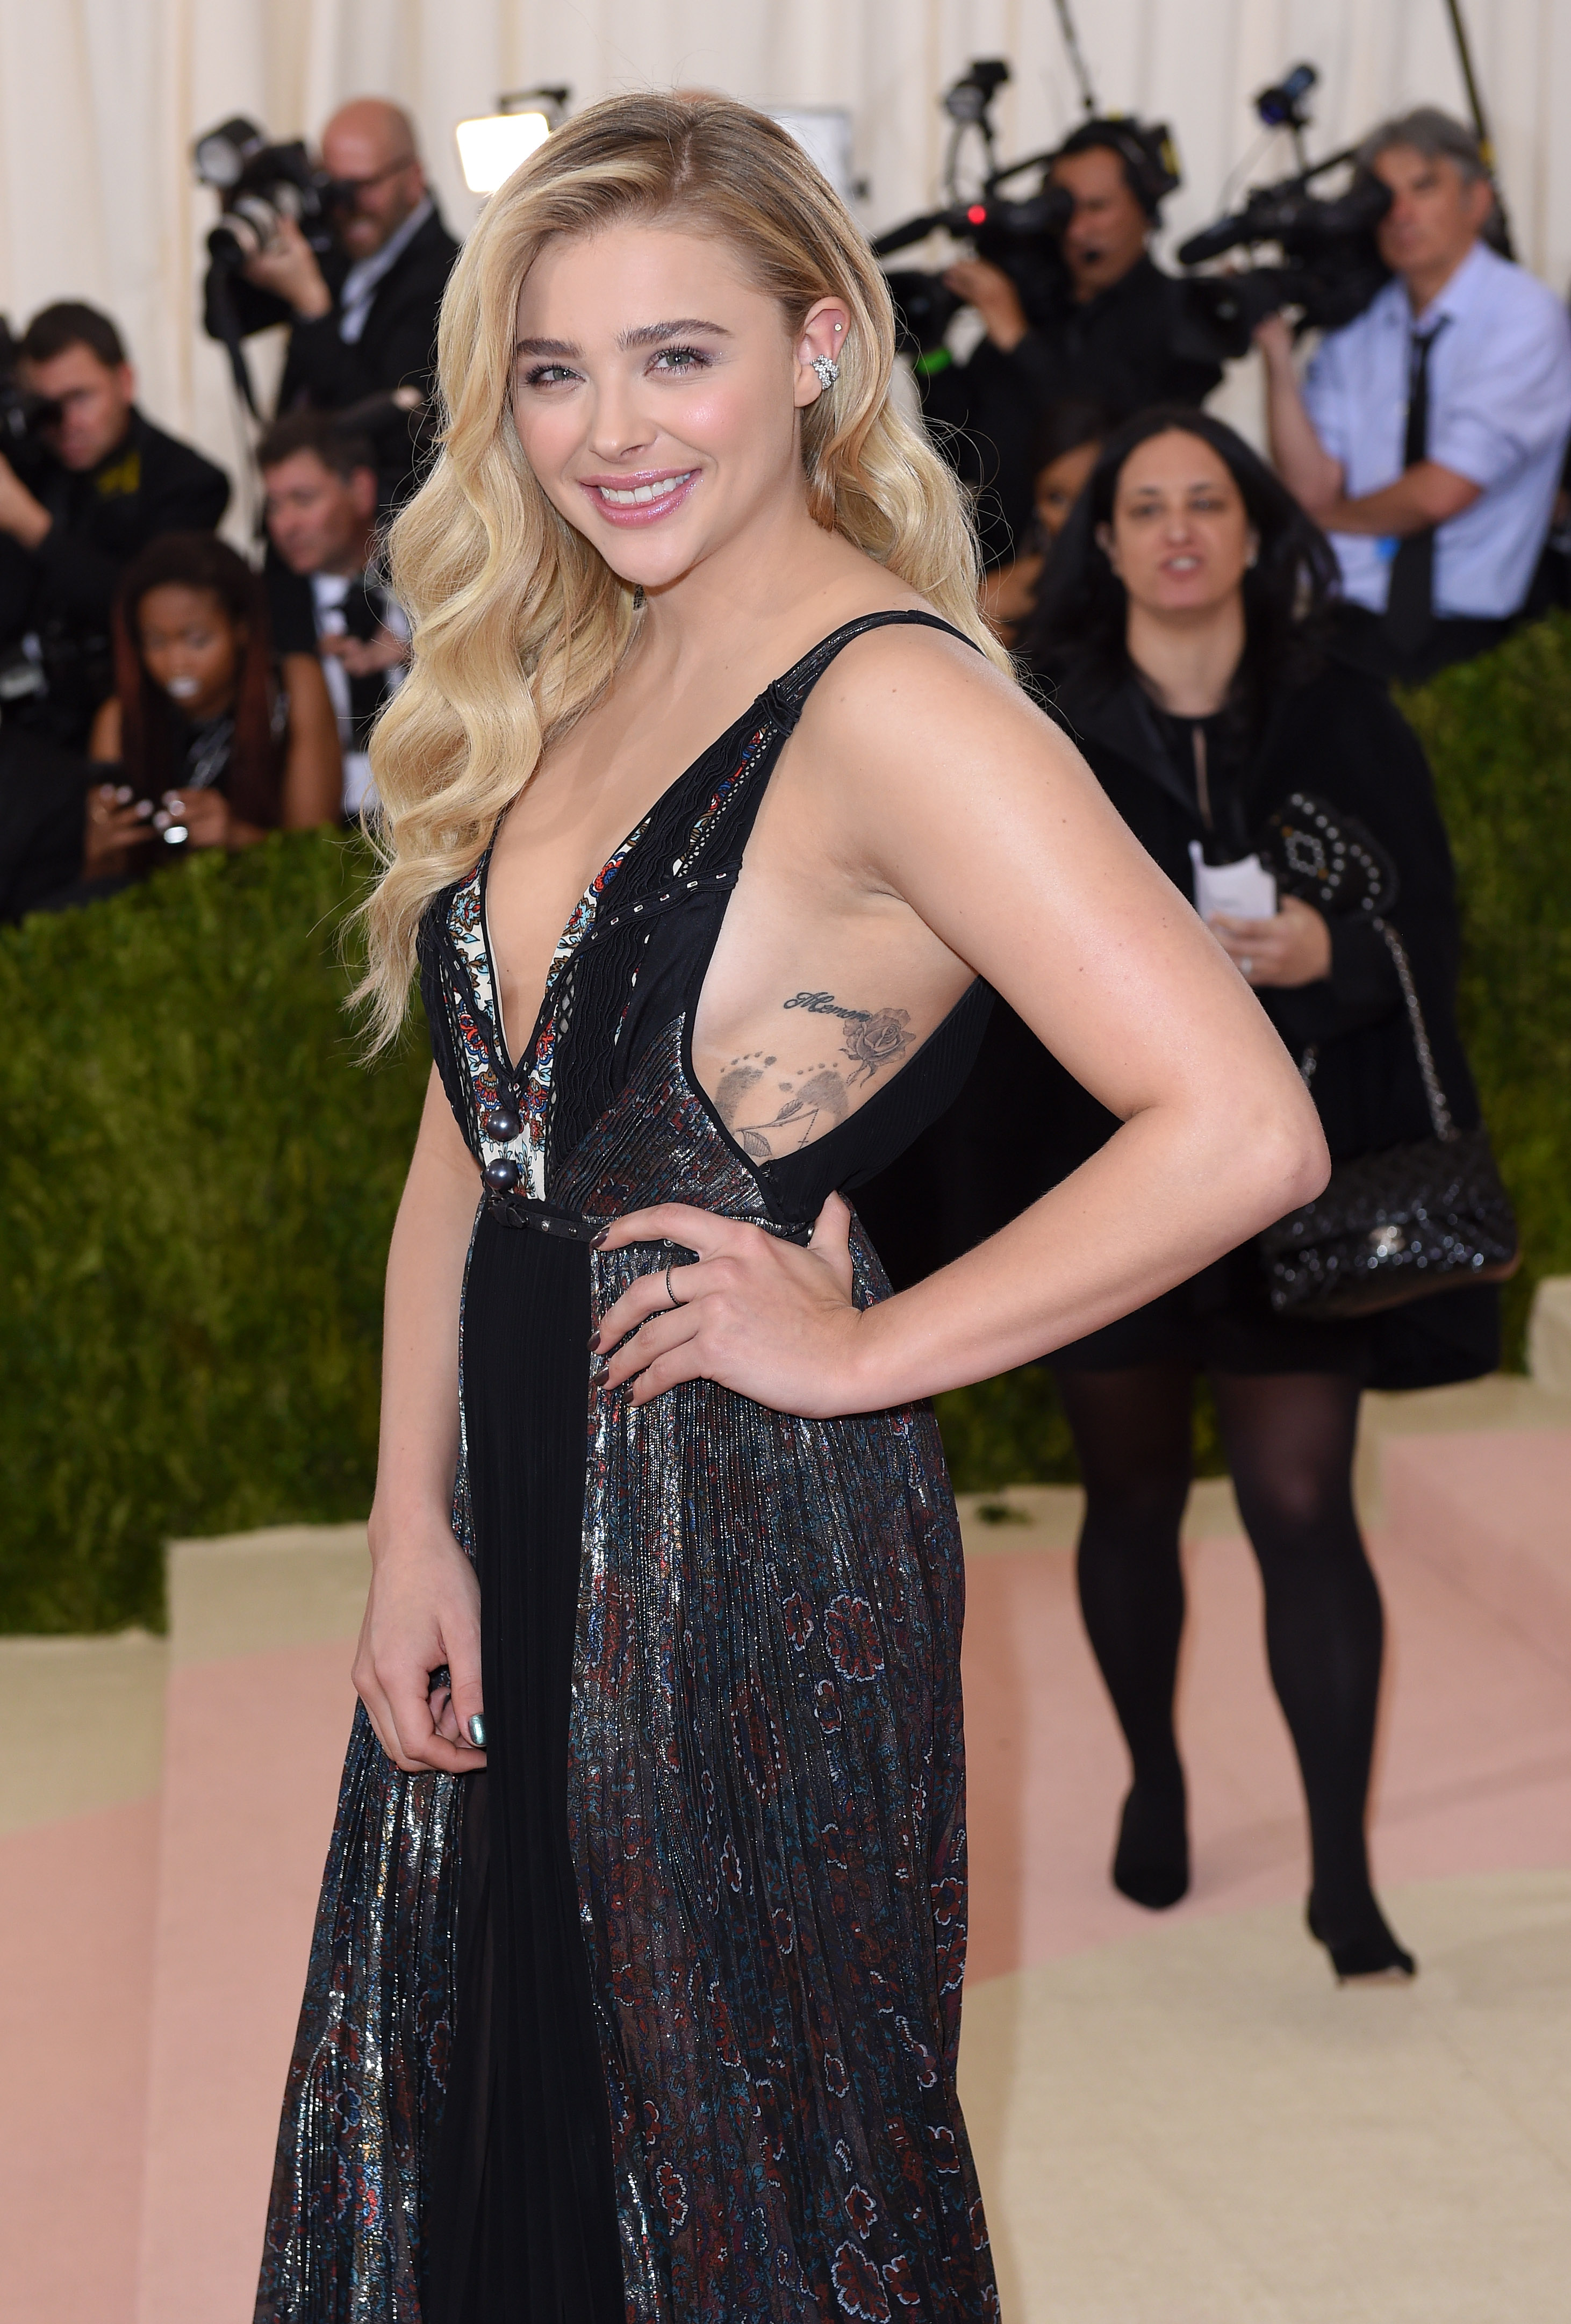 The look Quynh created for Chloë Grace Moretz at last year's Met Gala.